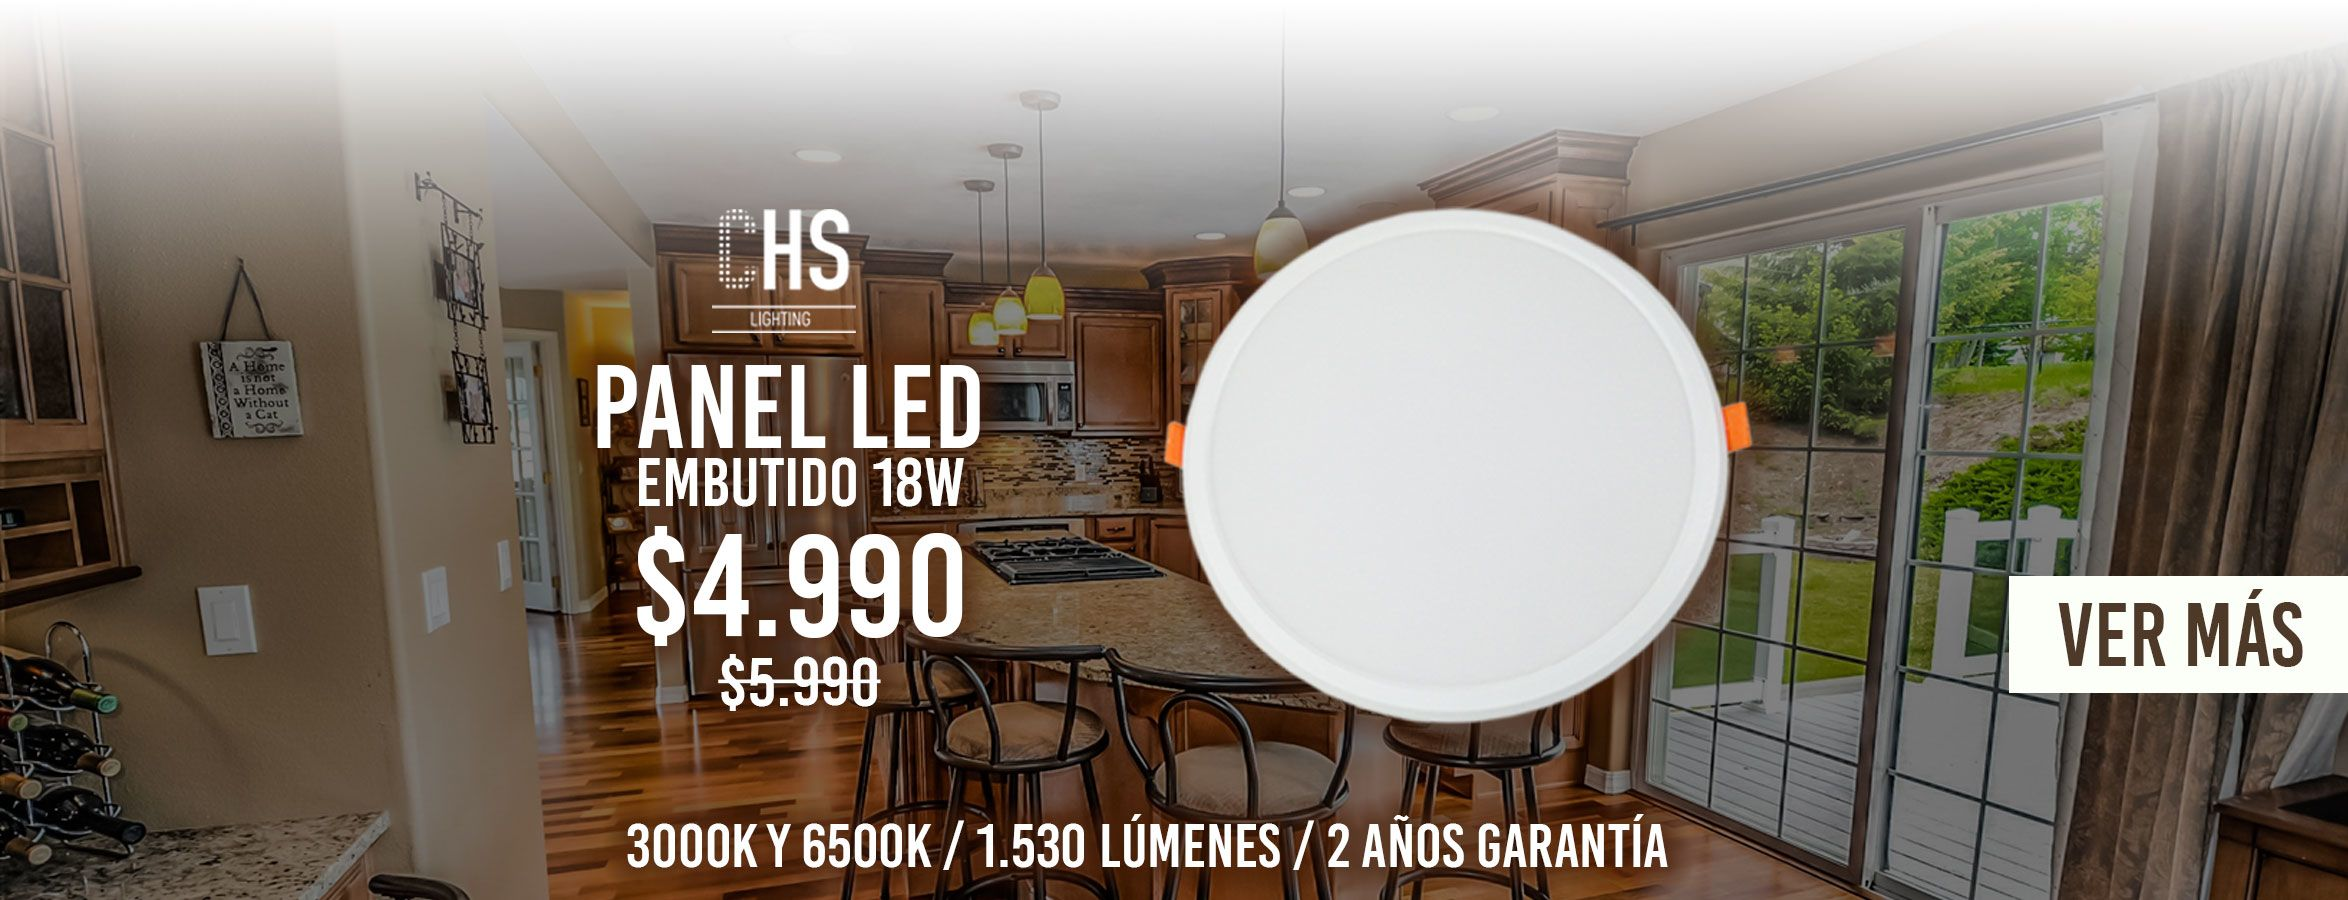 PANEL LED EMBUTIDO 18W - CHS